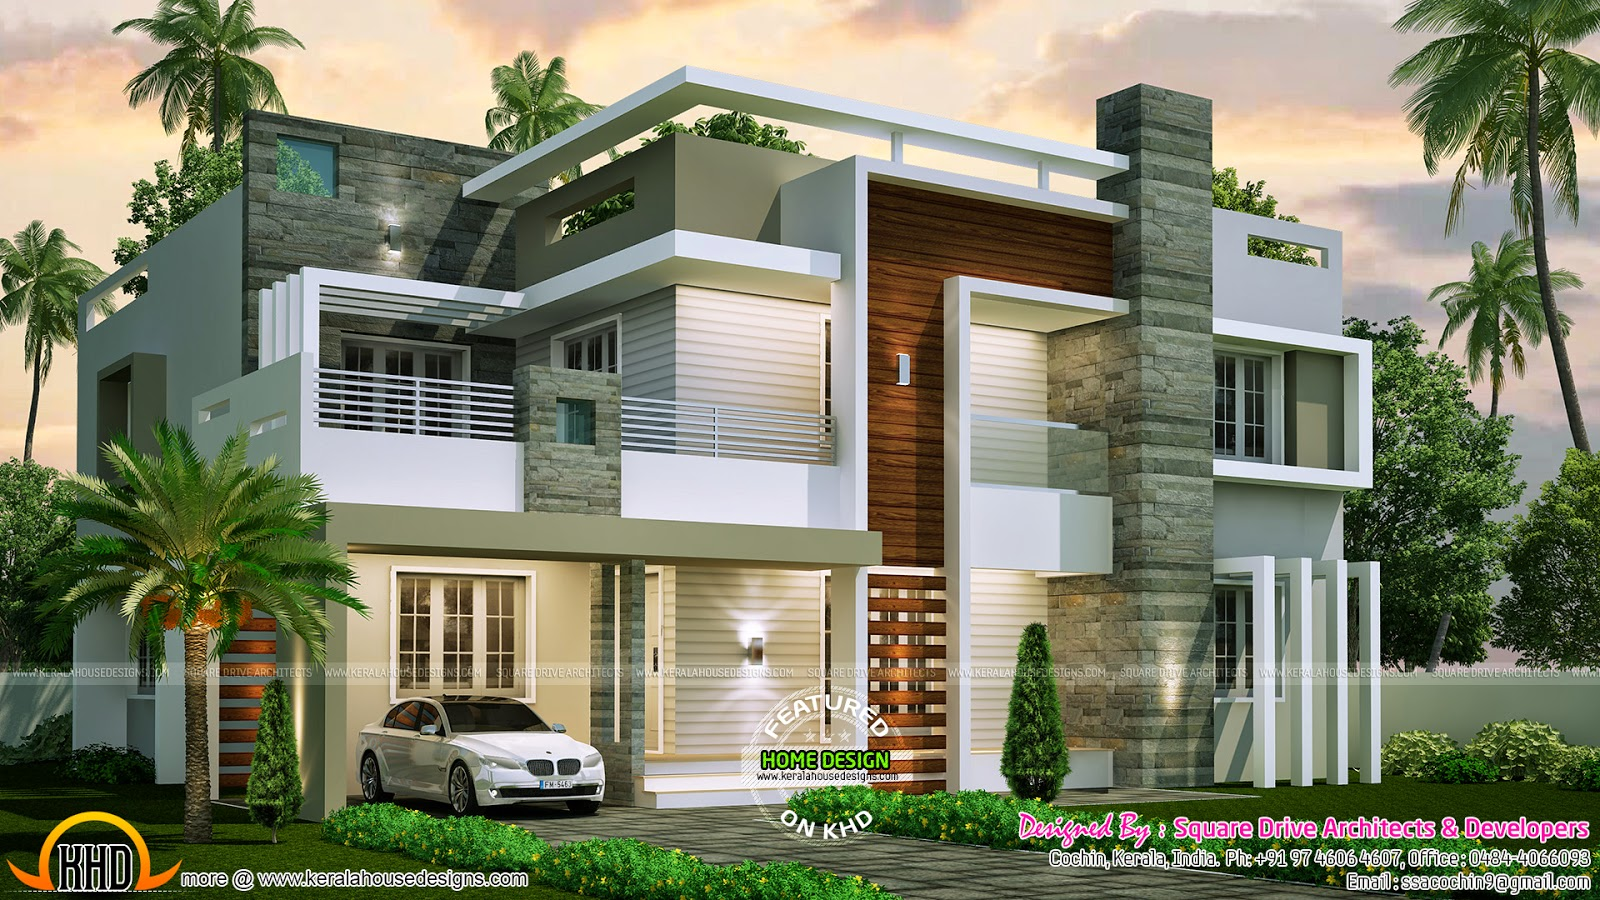 4 bedroom contemporary home design kerala home design for Best modern house design 2018